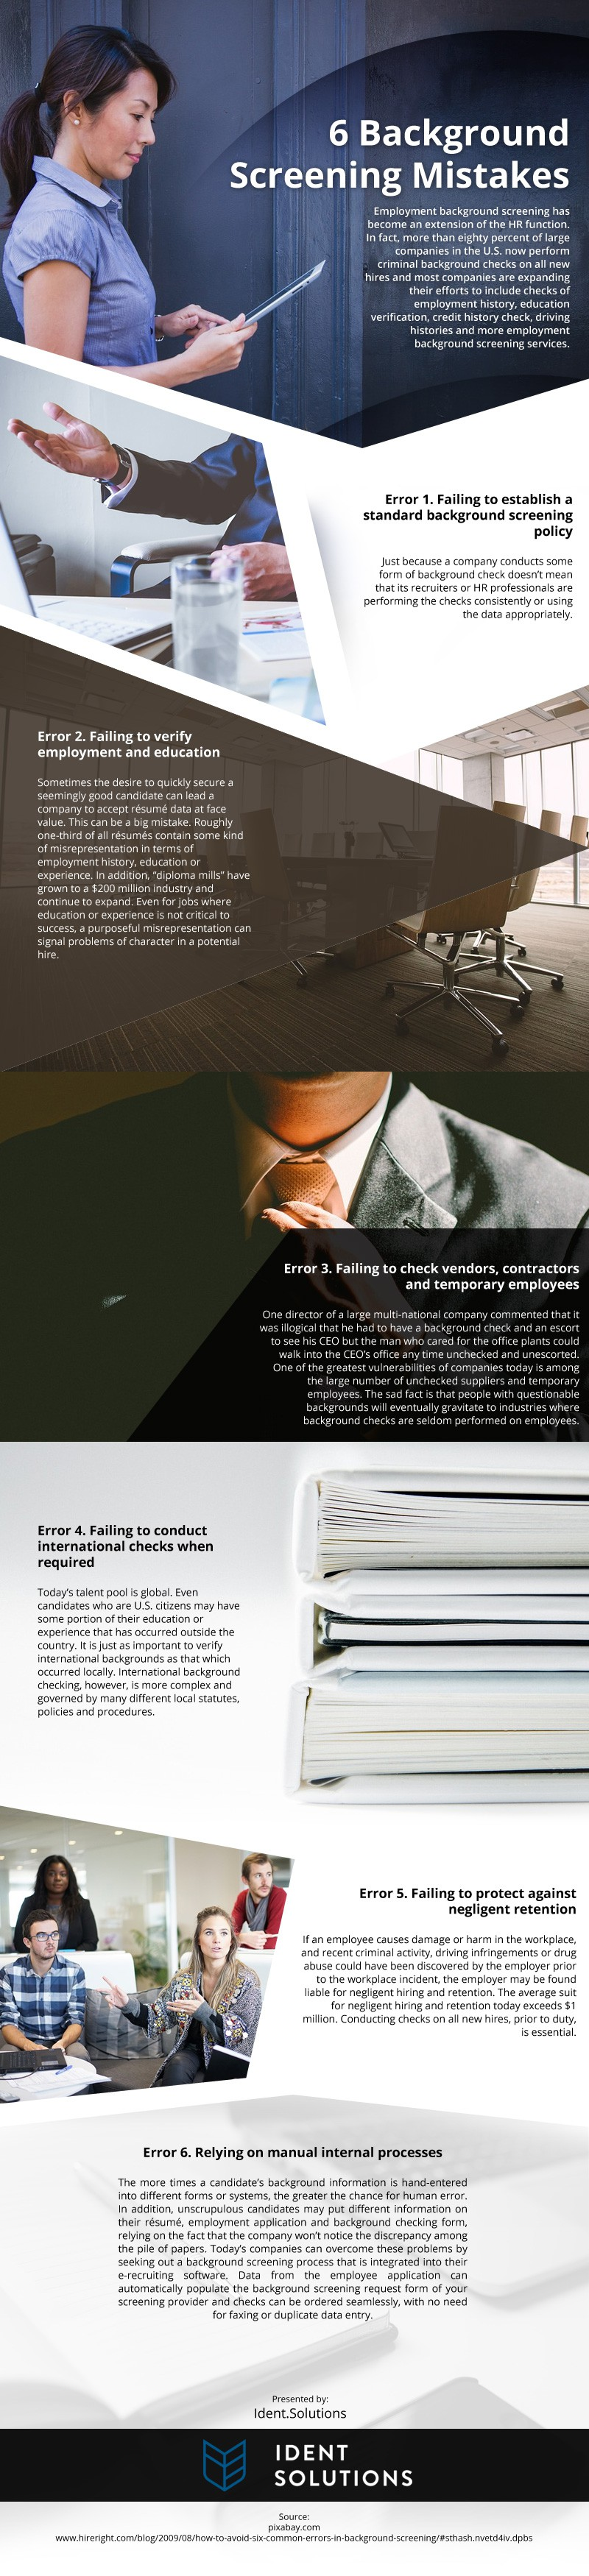 Background-Screening-Mistakes Infographic